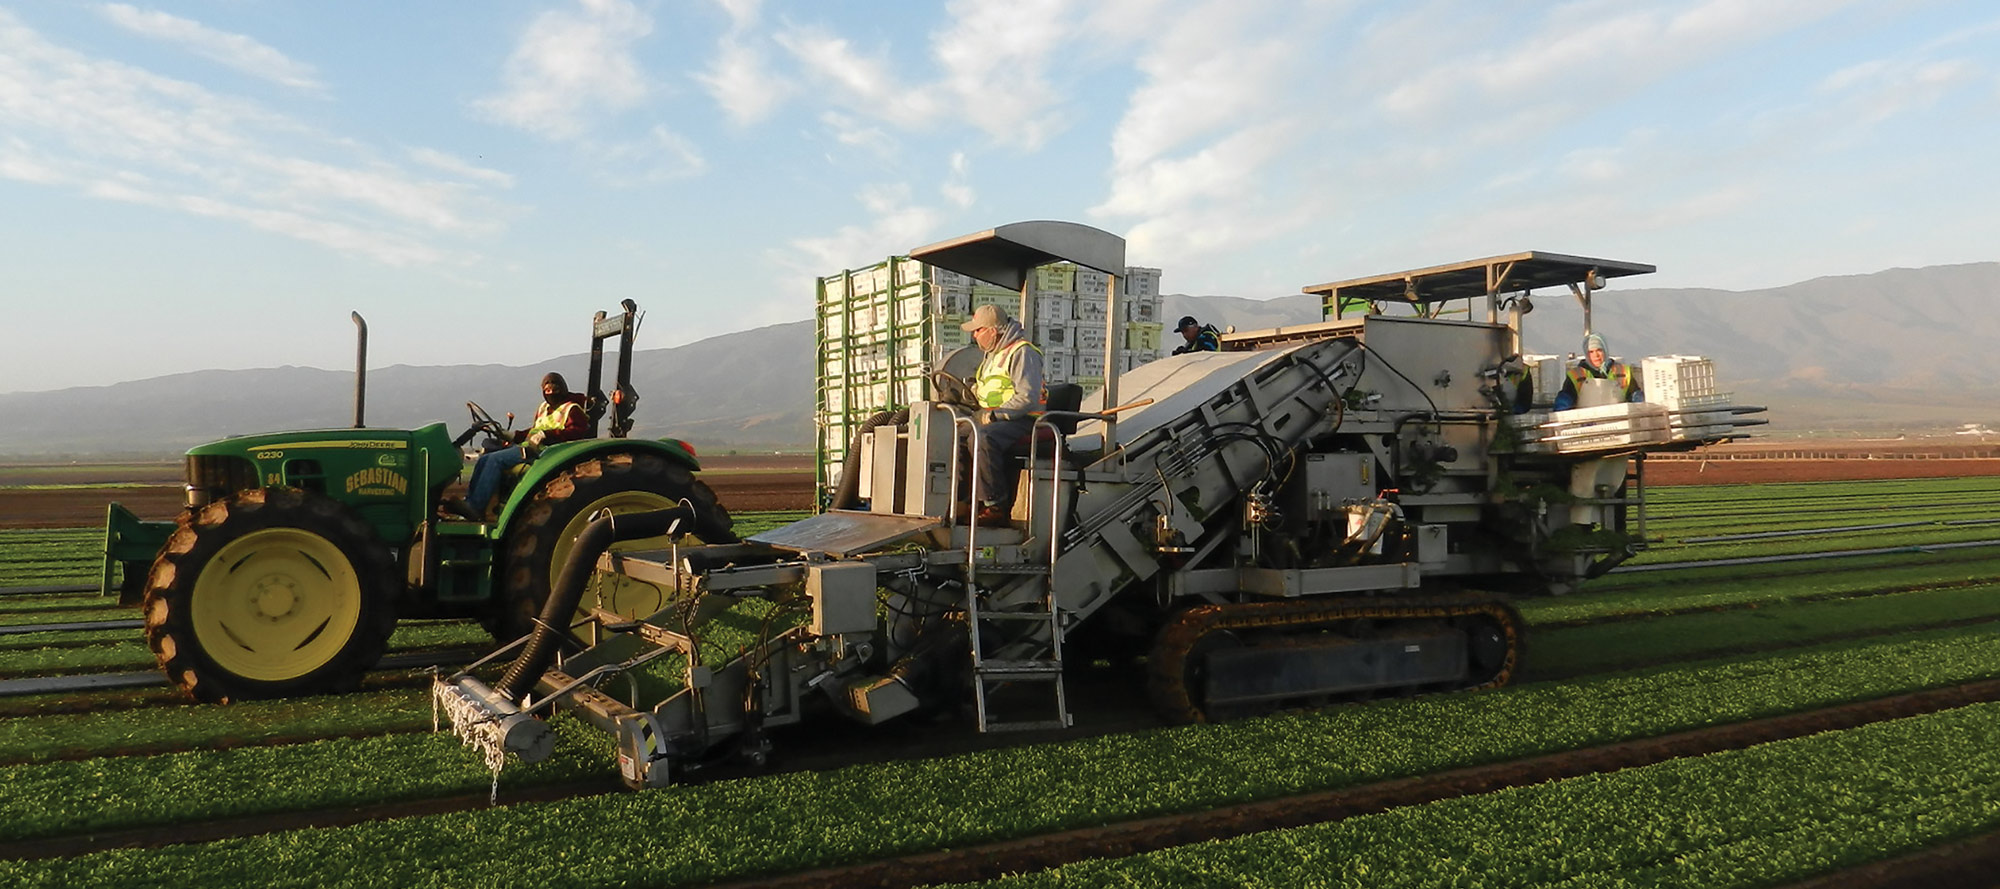 Field workers using Ramsay Highlander's track drive spinach harvester